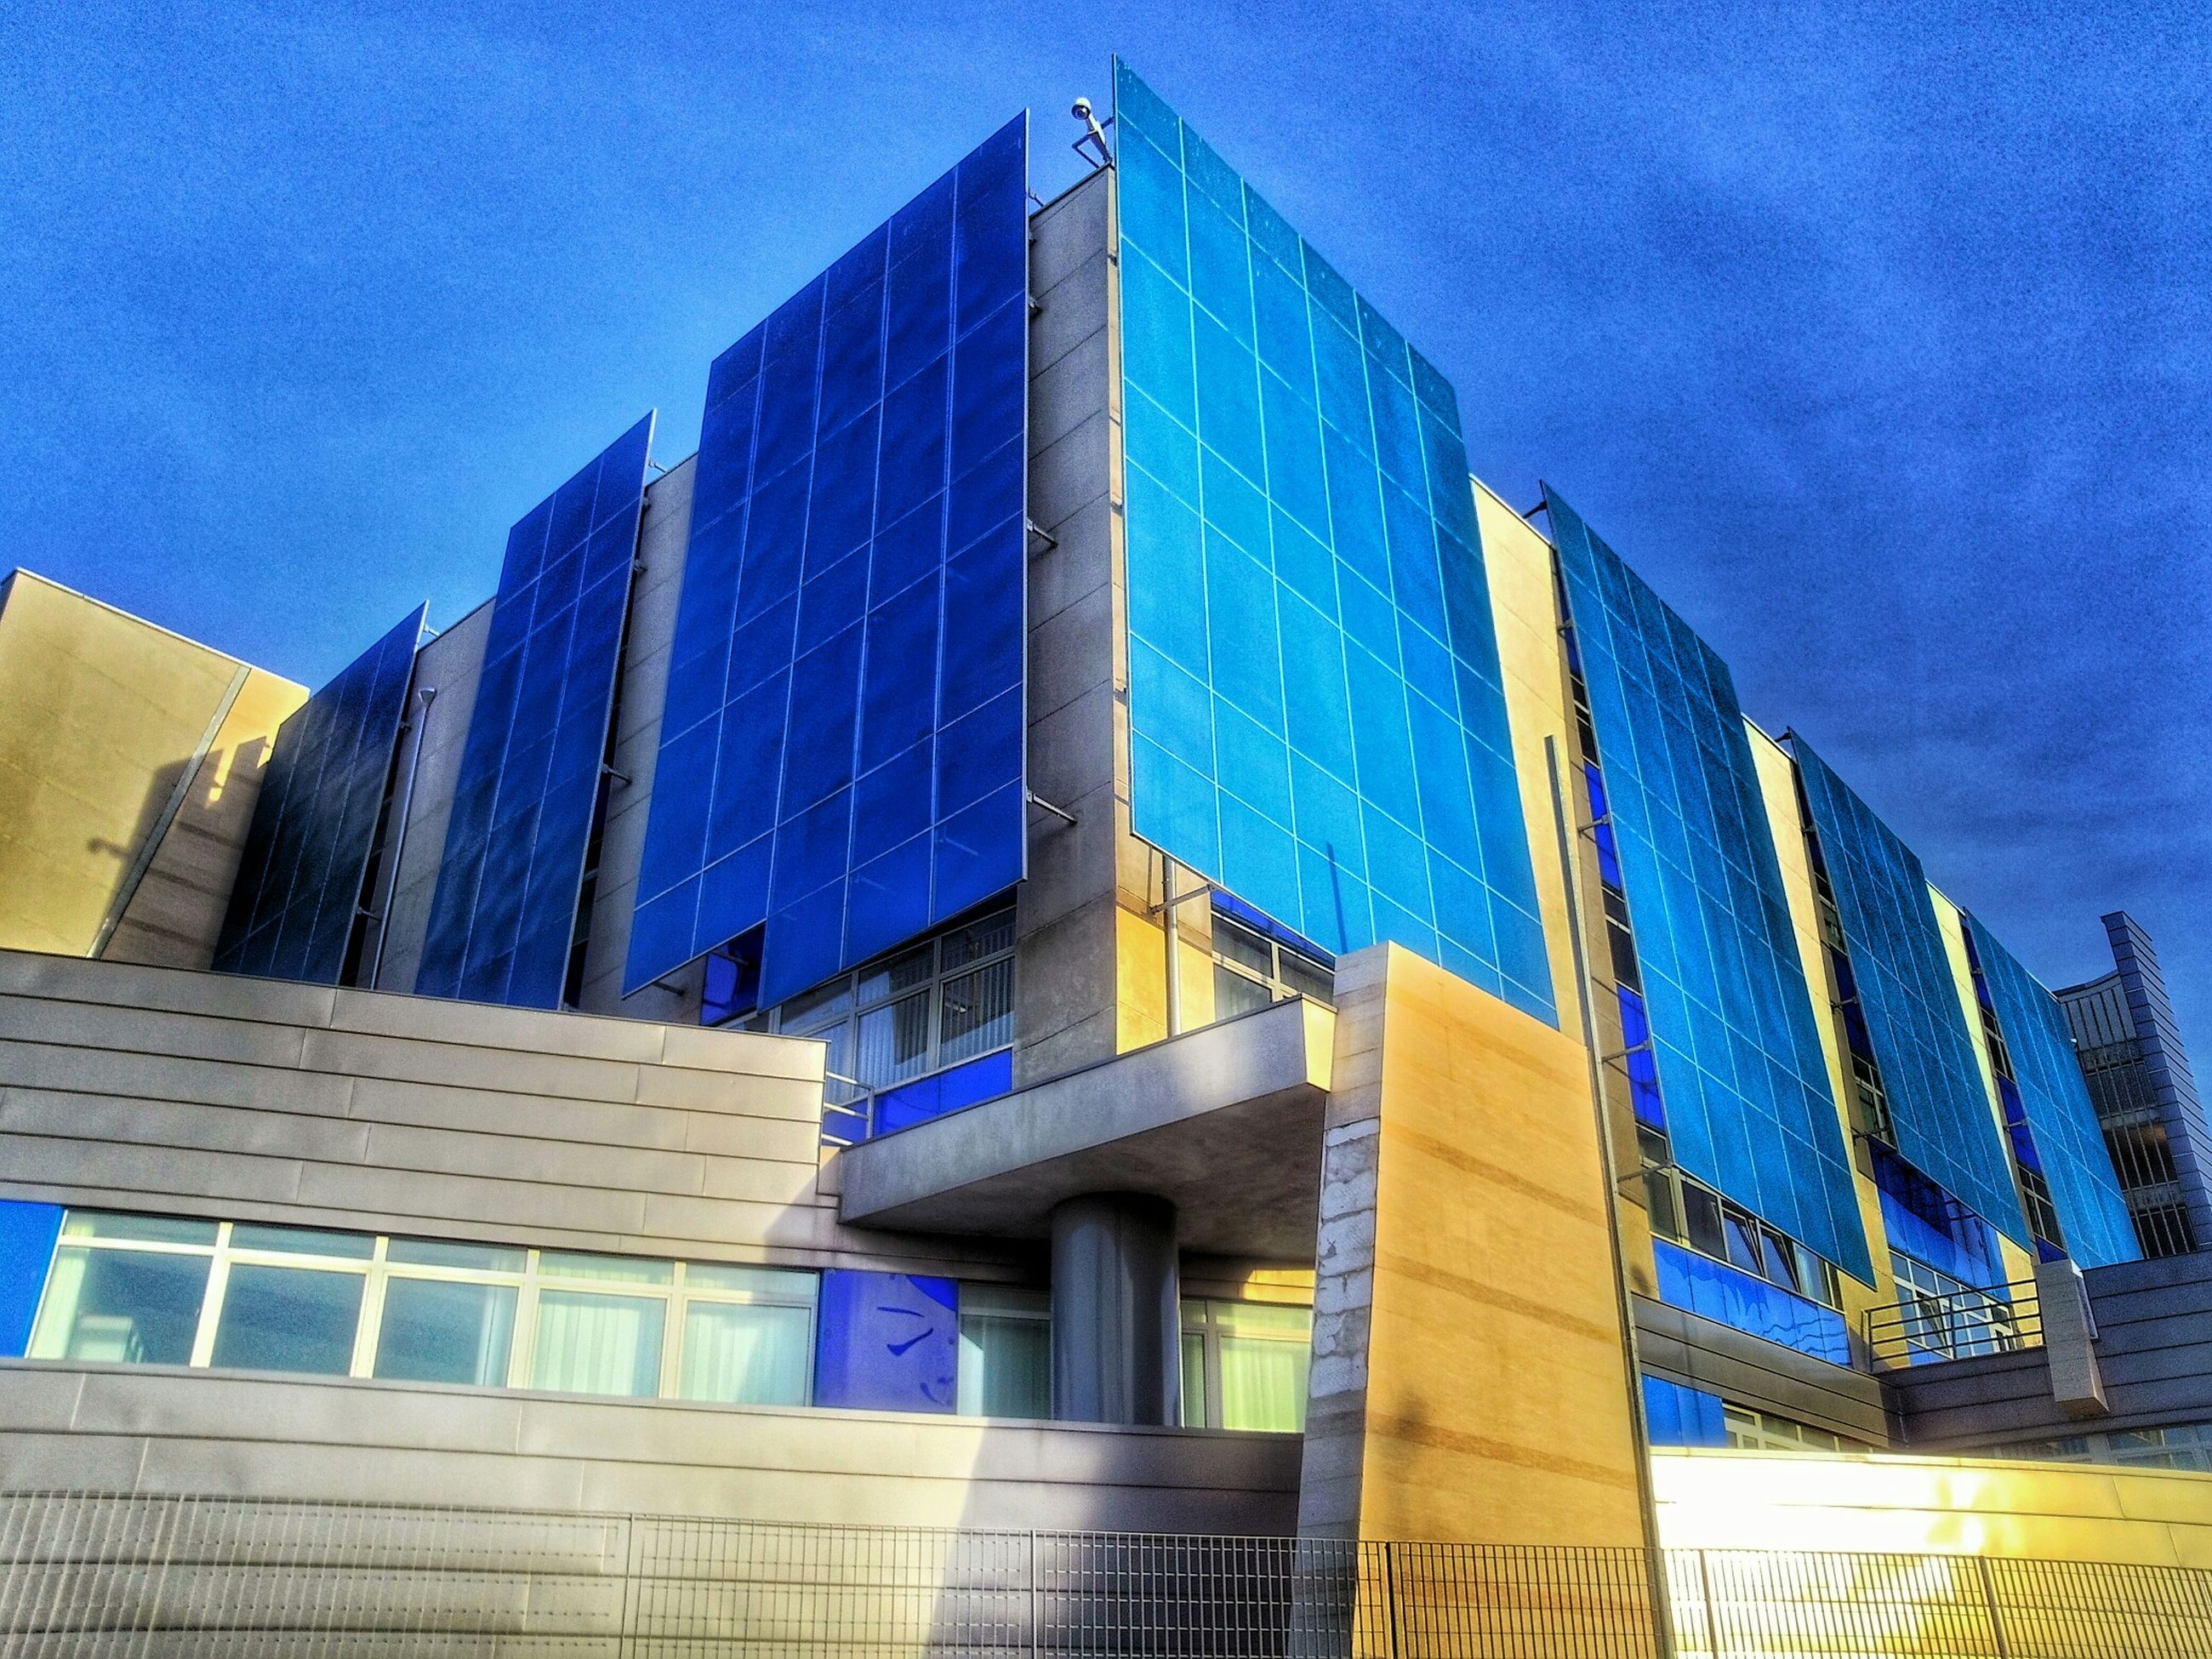 architecture, built structure, building exterior, blue, low angle view, building, modern, city, window, reflection, sky, glass - material, office building, outdoors, sunlight, day, no people, residential structure, residential building, tower